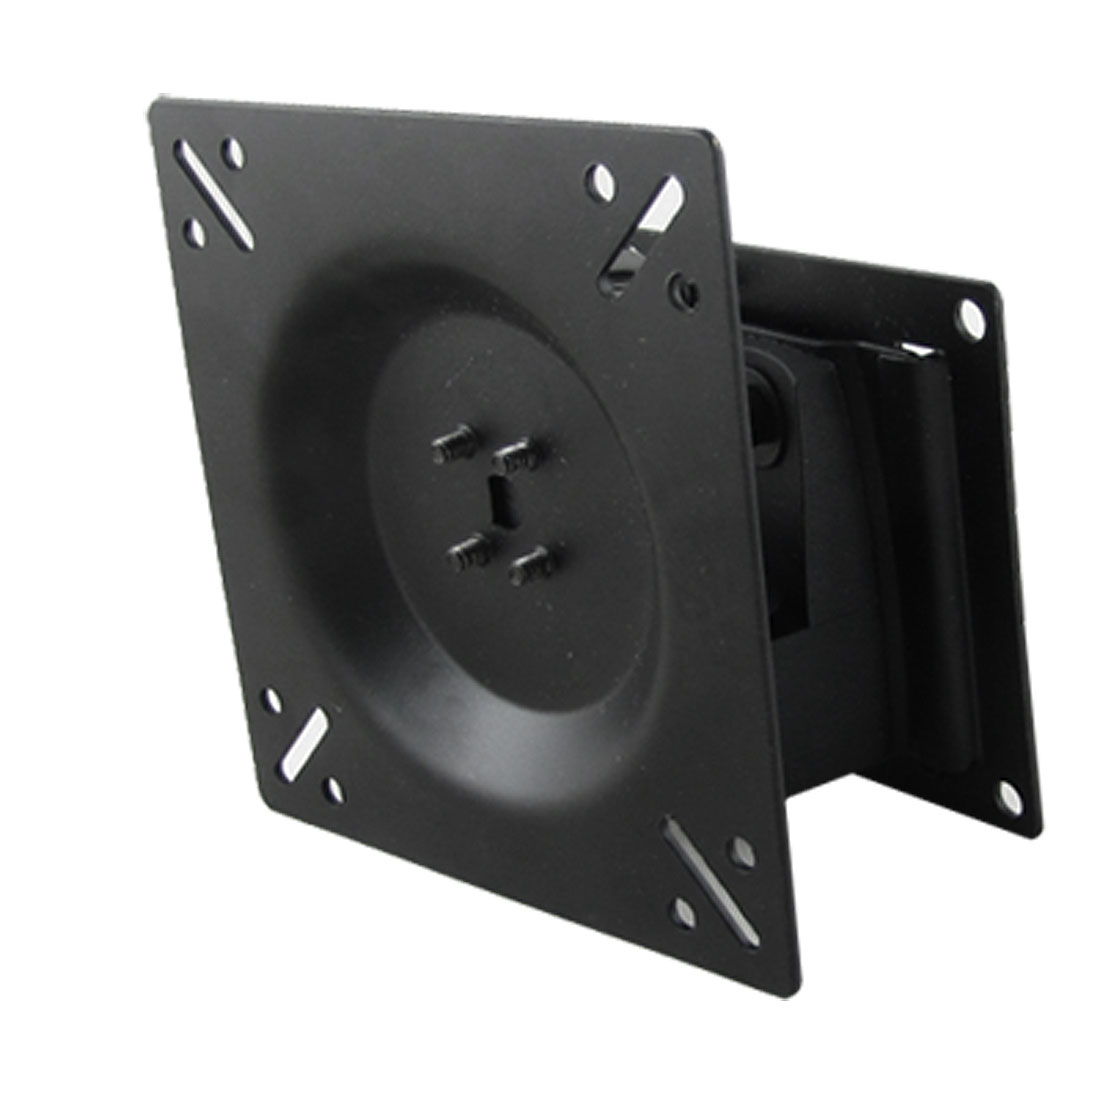 LCD TV Monitor Wall Mount Bracket Metal Stand Rack Black